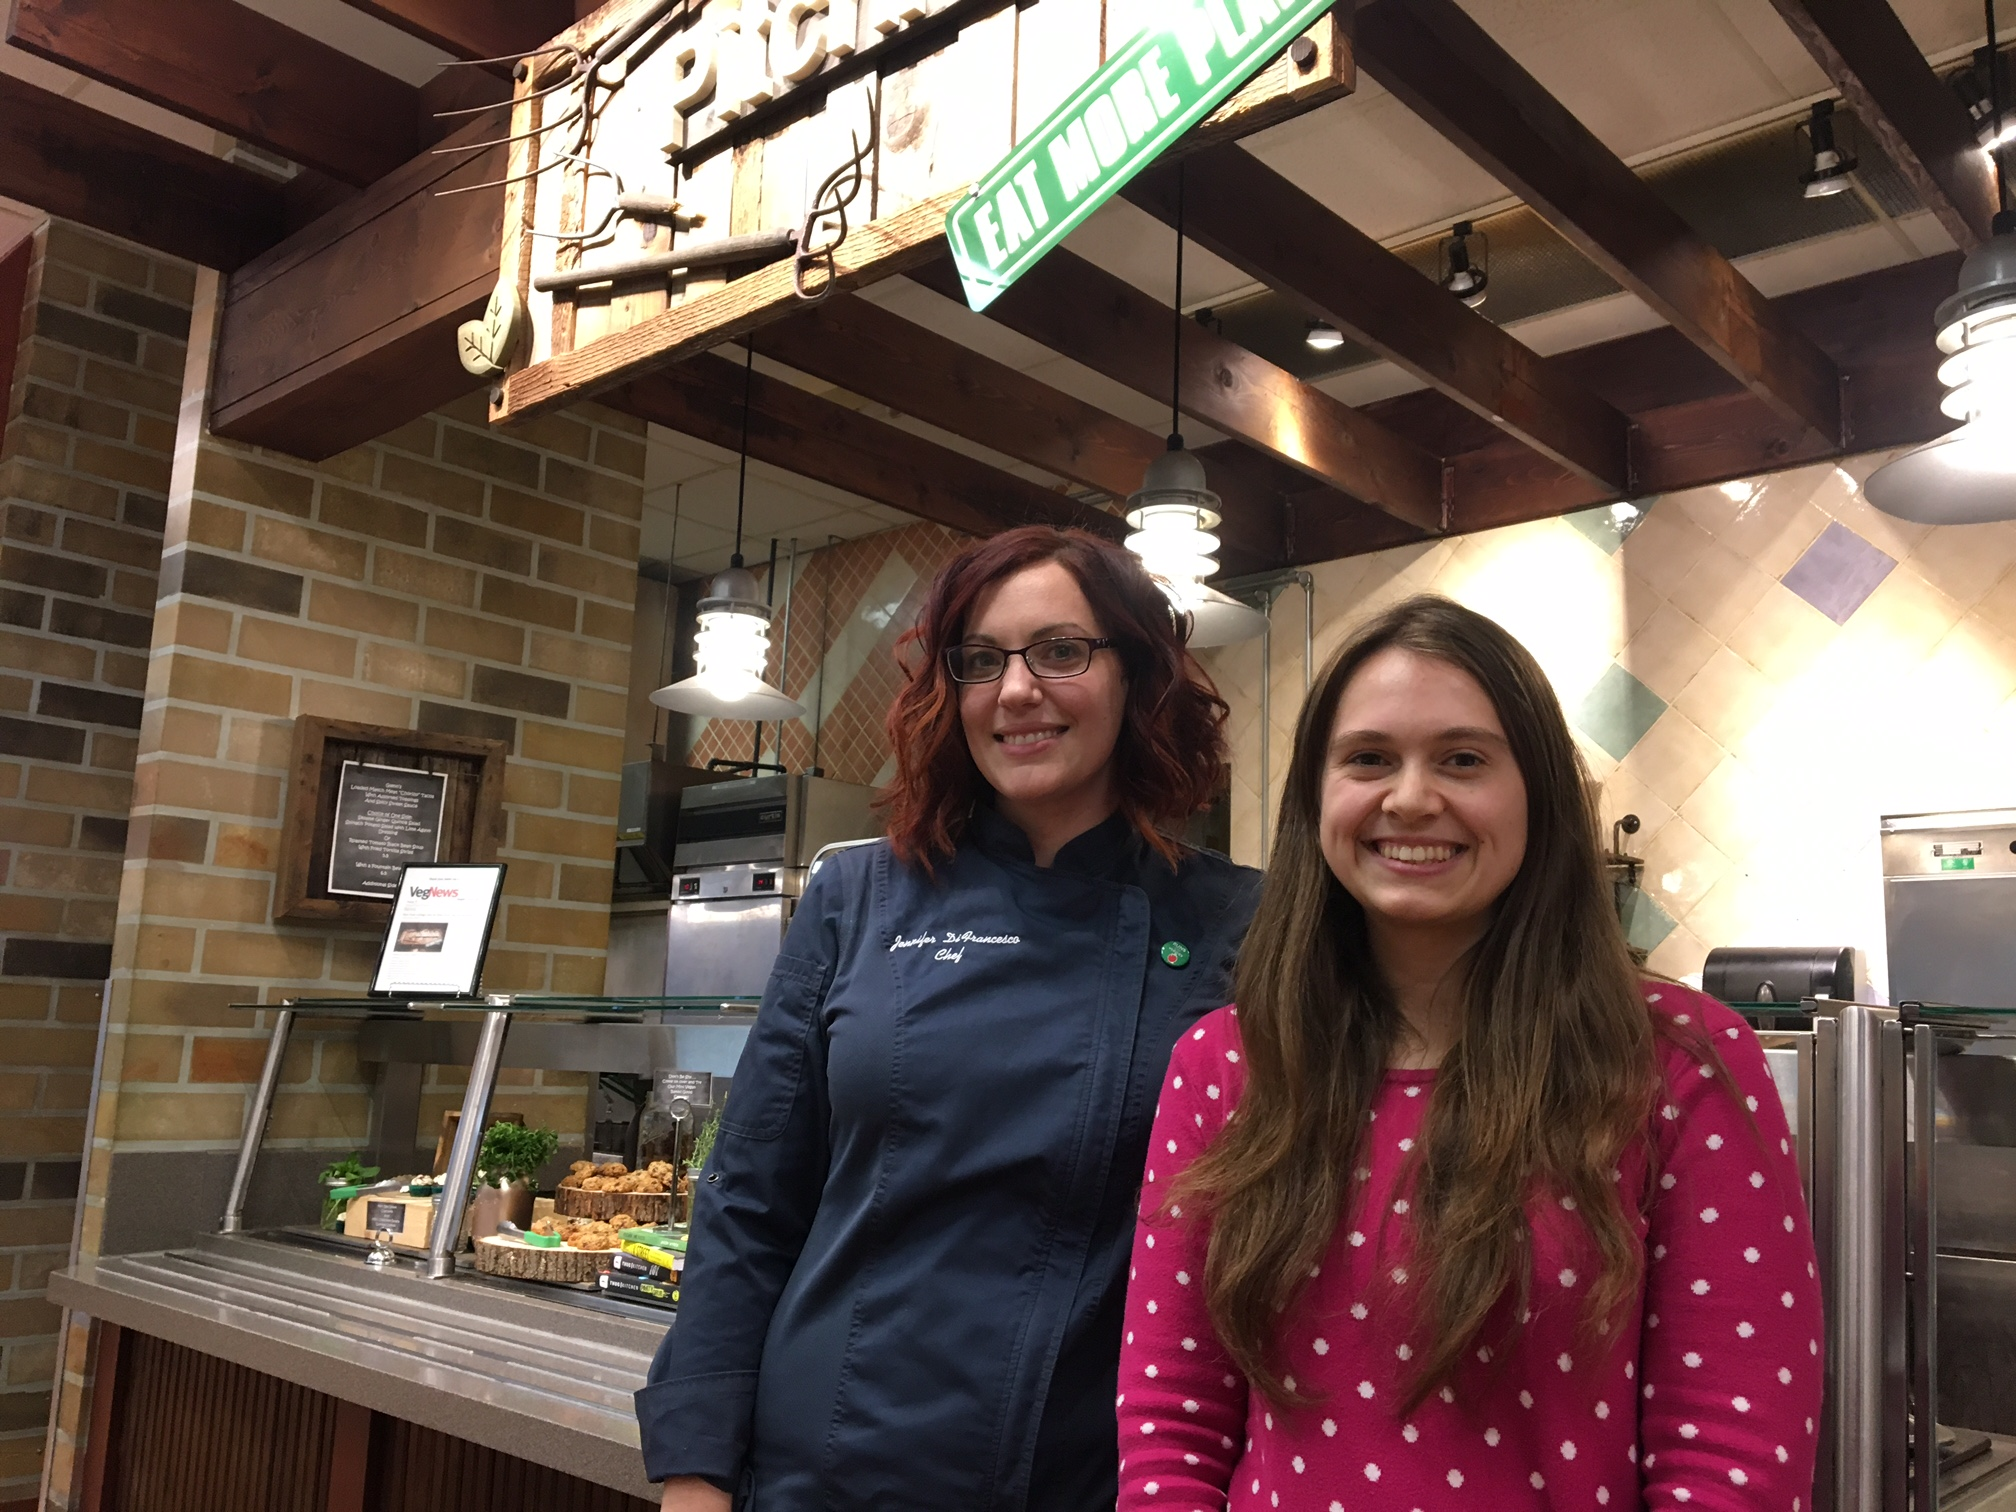 Canisius dining chef Jennifer DiFrancesco and Veg Club President Marissa Mykietyn were among those who put together the Pitchforks concept.